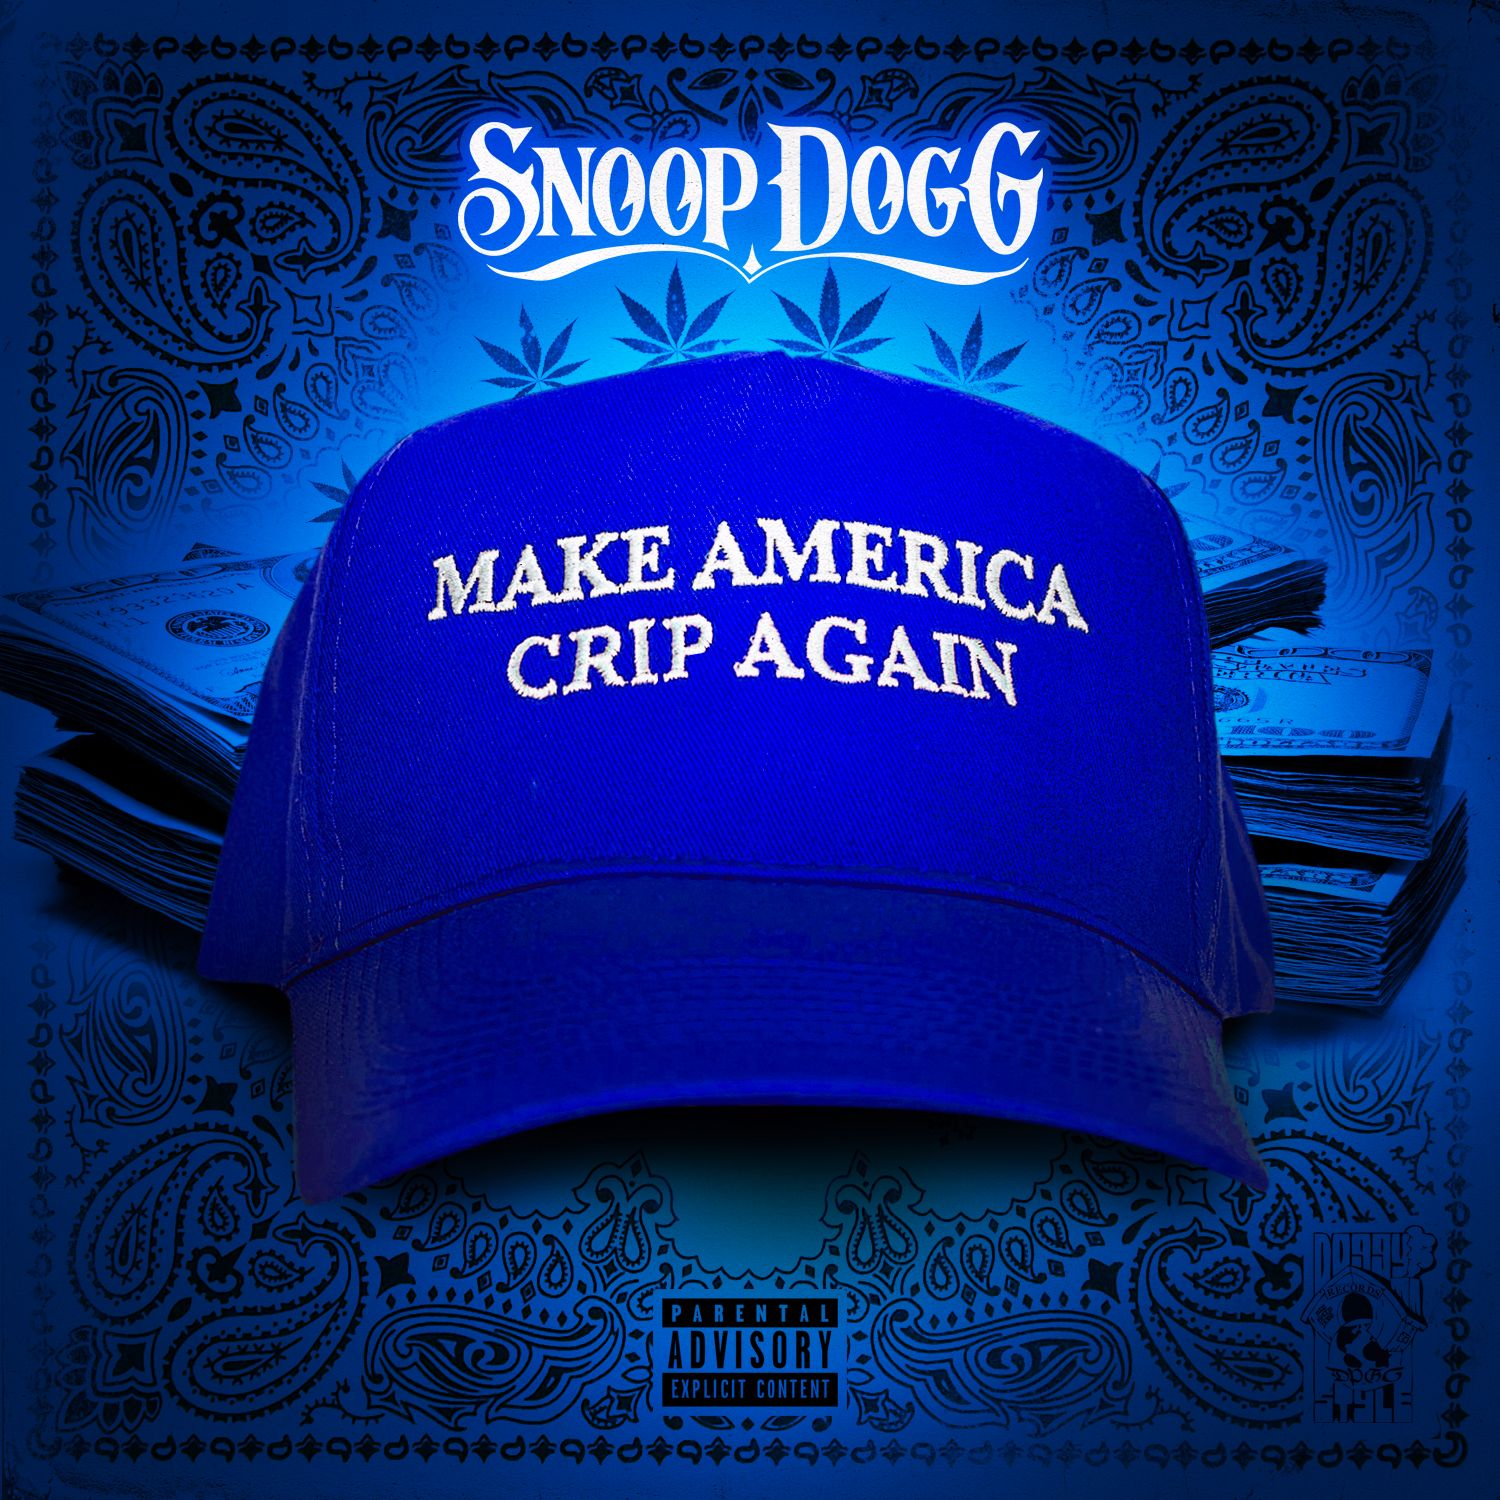 Snoop Dogg – 3's Company (feat. Chris Brown & OT Genasis)